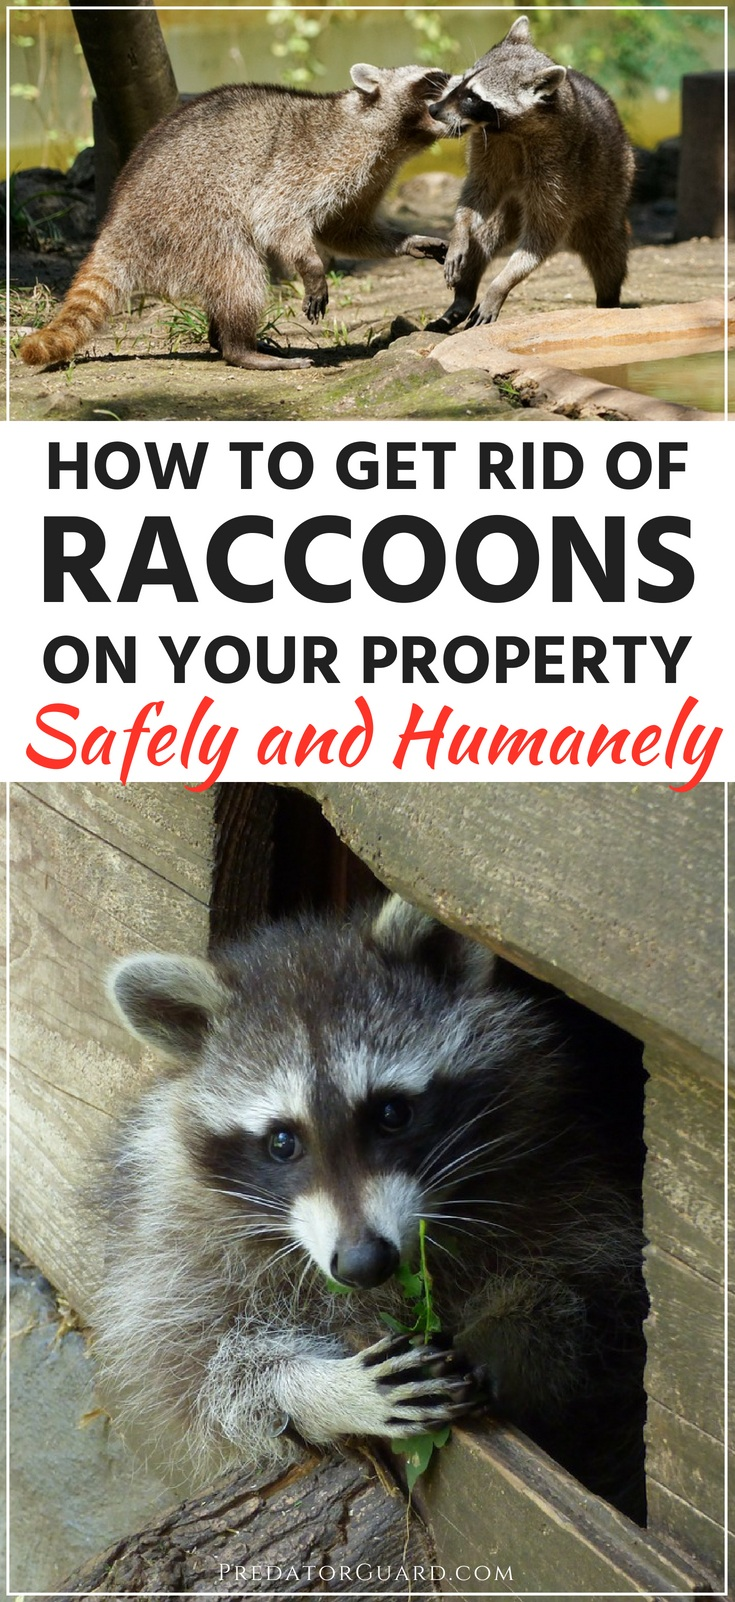 How-To-Get-Rid-of-Raccoons-on-Your-Property-Safely-and-Humanely